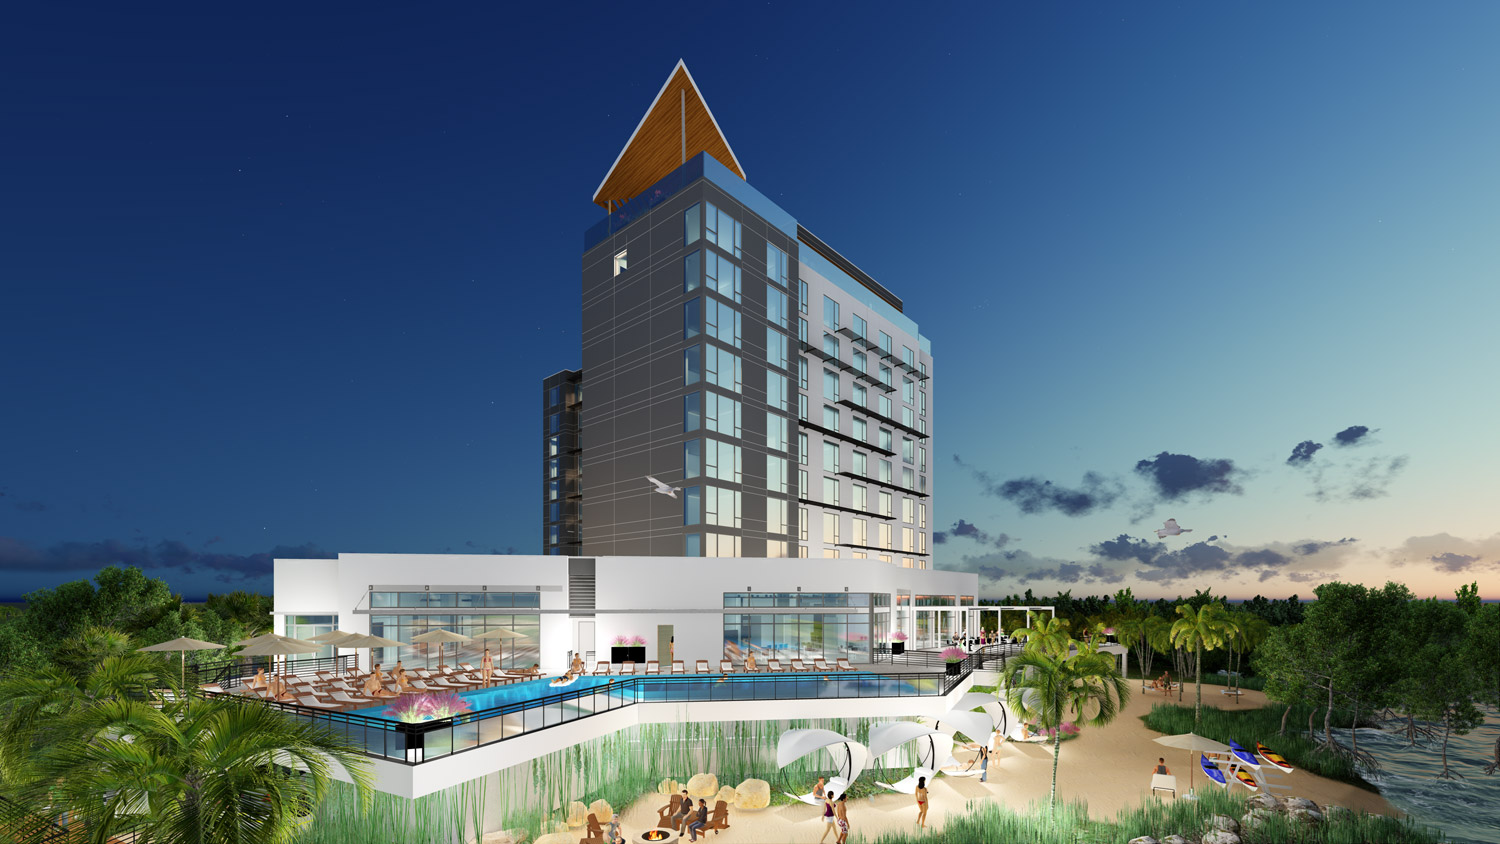 Tampa bay autograph collection hotel to open in 2018 for Hotel collection hotels